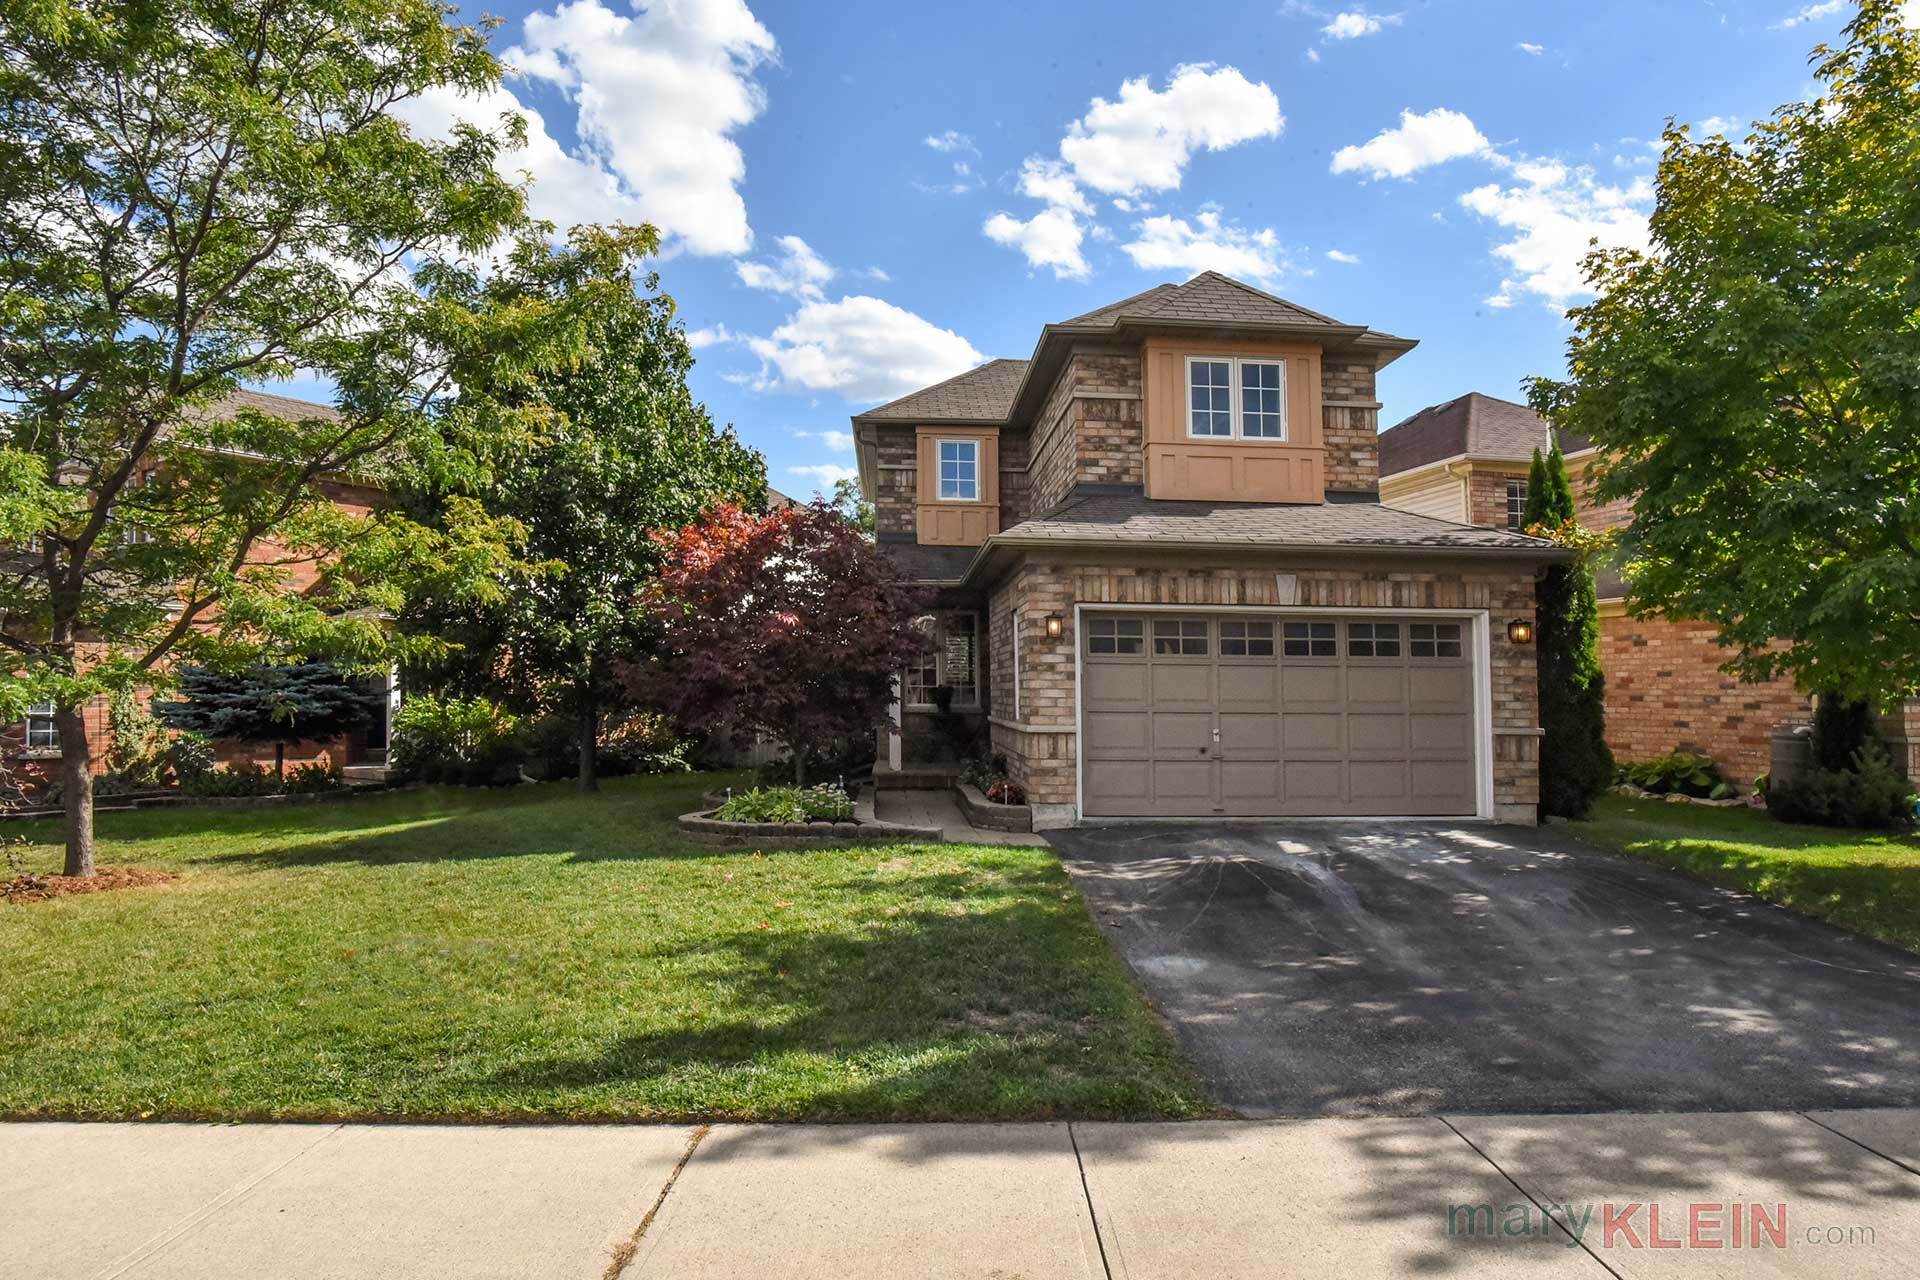 3-Bedroom Home for sale, Georgetown, Ontario halton hills, 8 Russell Street, Kait Klein, Real estate kait,